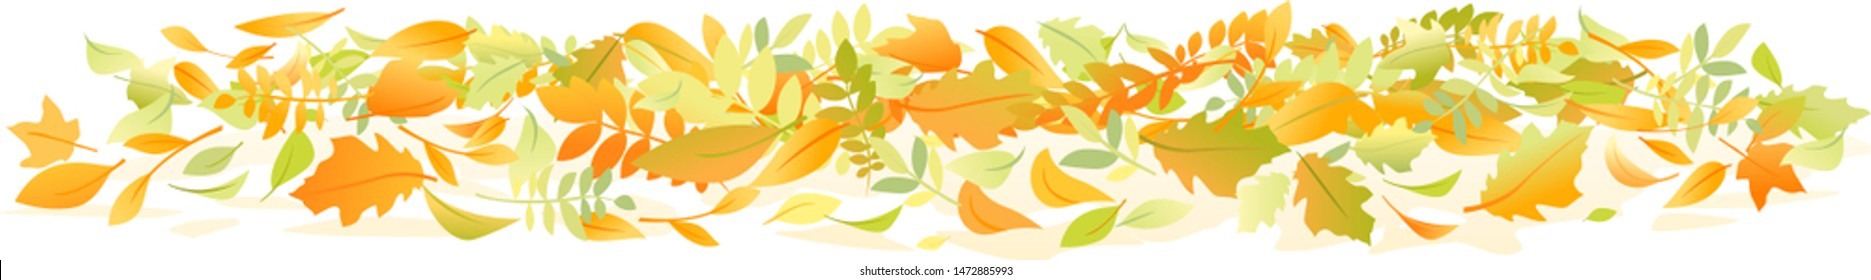 Group of various autumn fallen leaves in red and orange colors lying on ground isolated, dump of different leaves, autumn concept illustration clipart